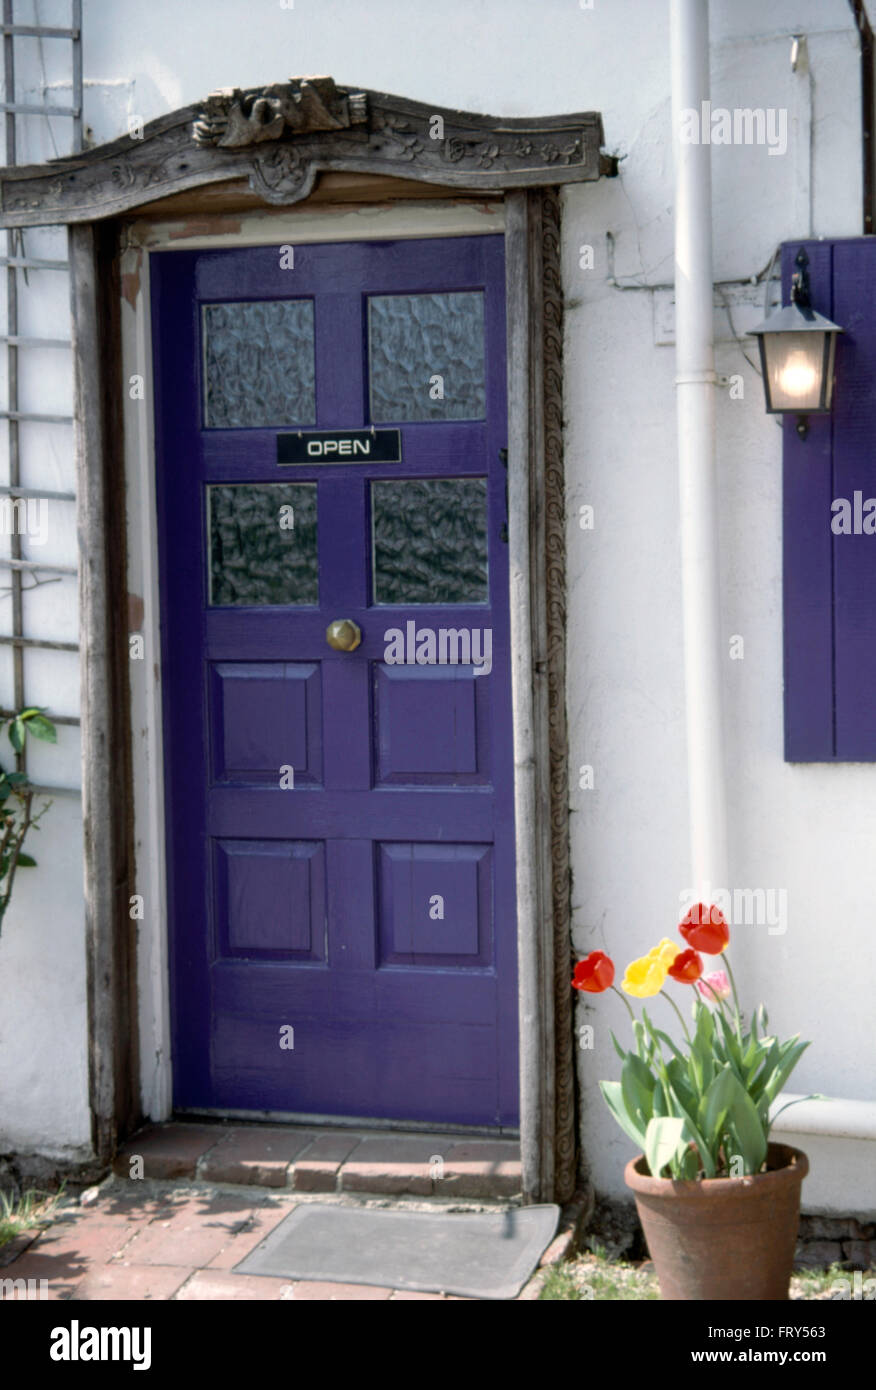 Close Up Of A White House With A Purple Front Door With A